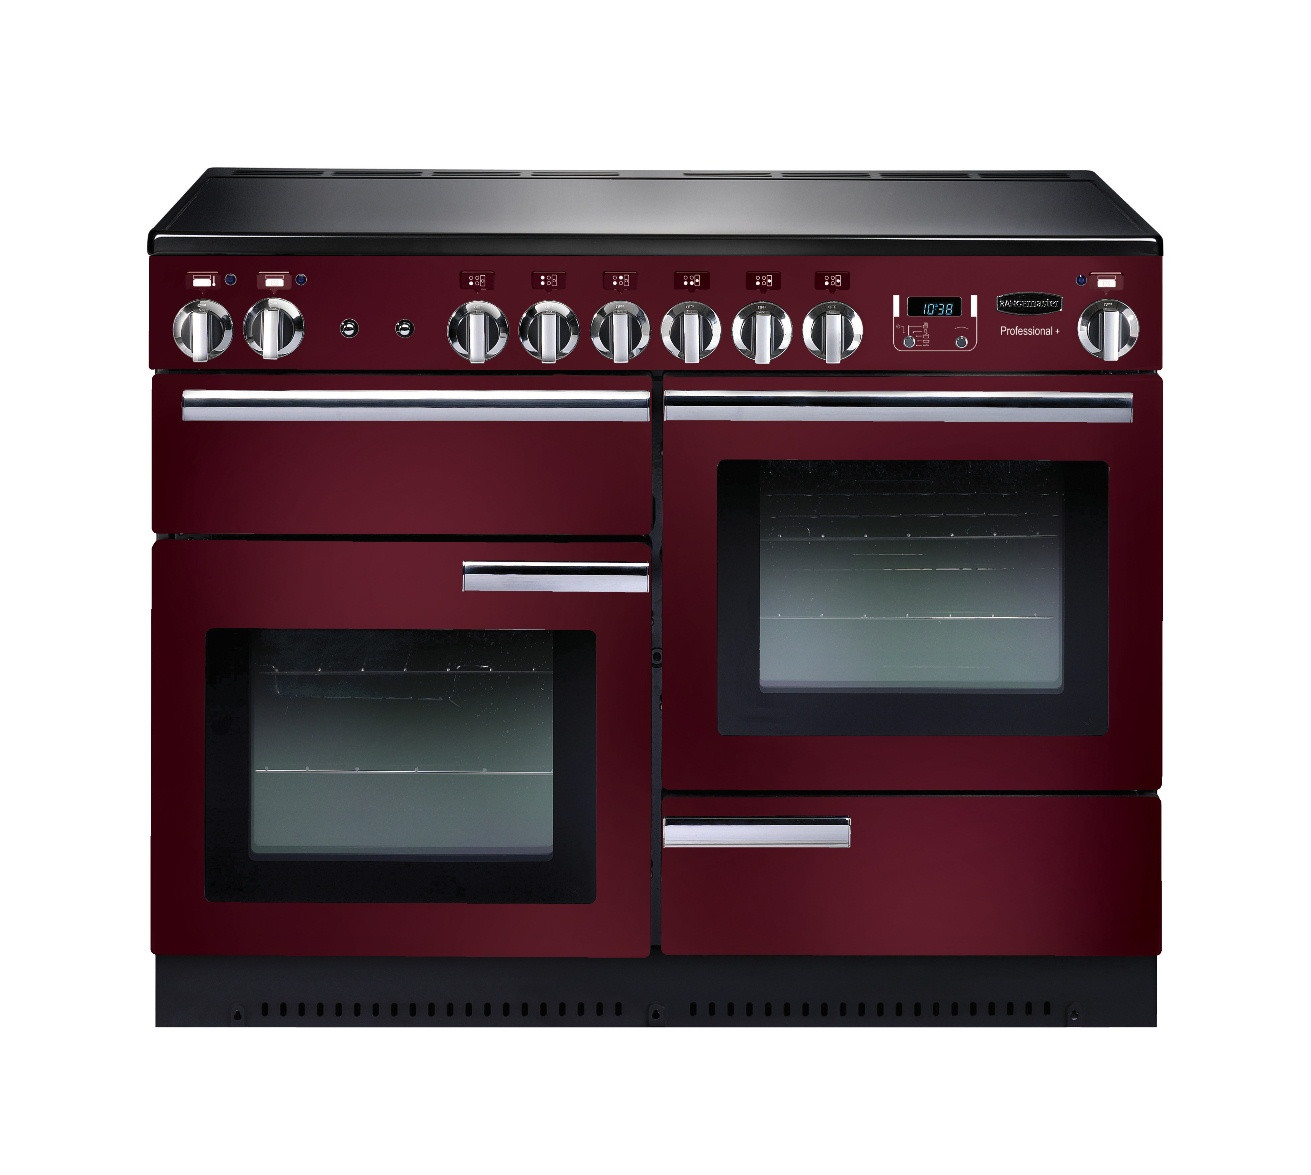 Rangemaster Professional Plus 110 Induction Cranberry Range Cooker 91790